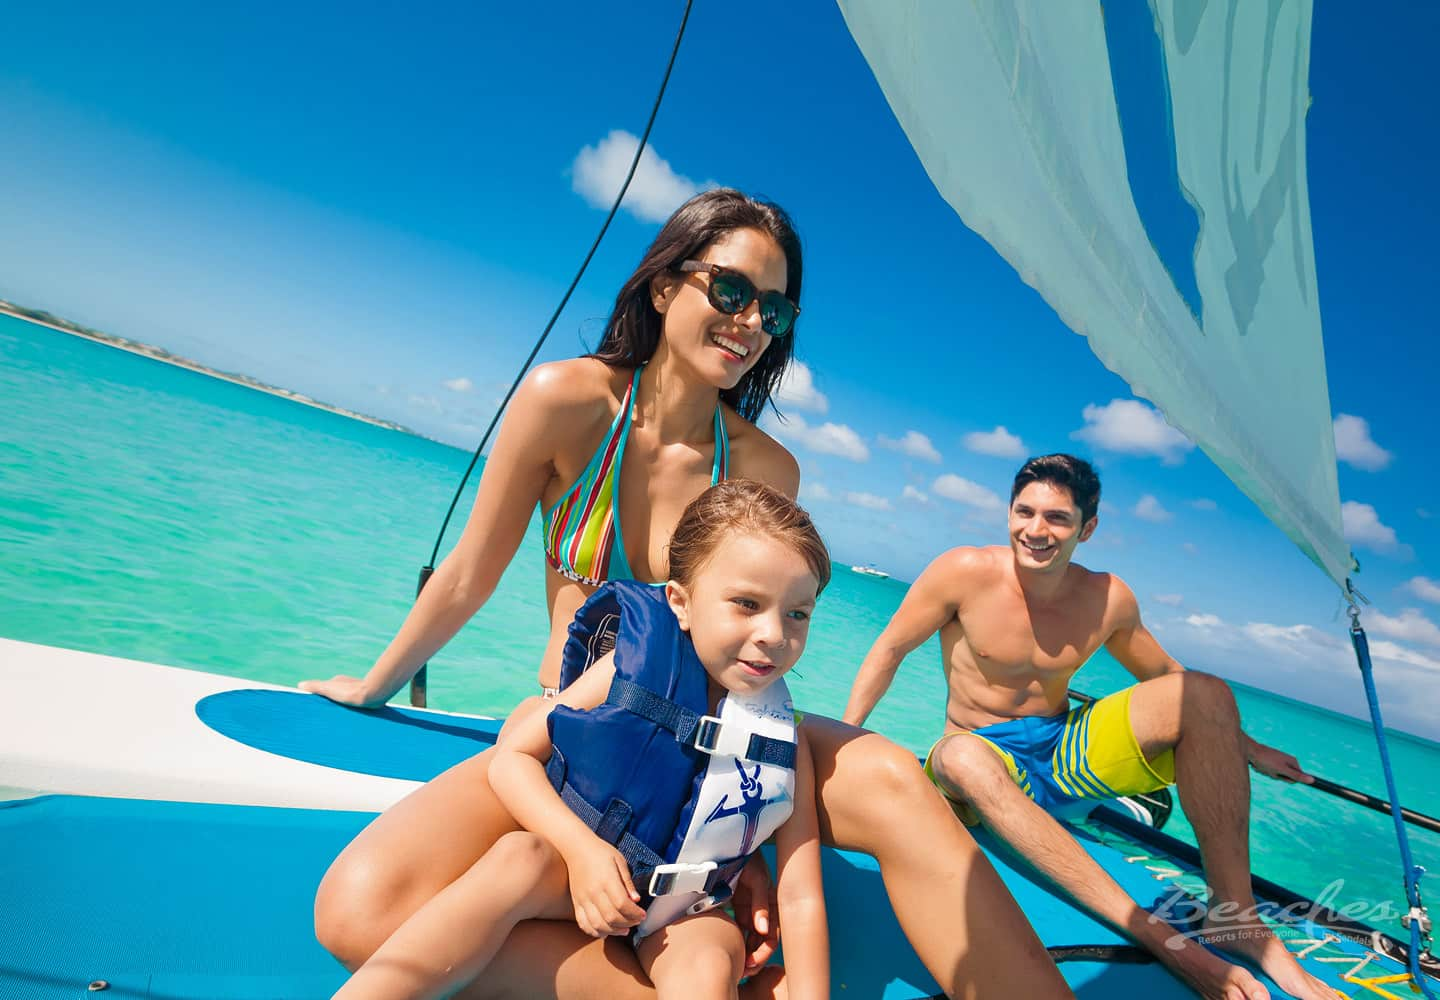 dad, mom, and daughter on a sail boat at the beaches turks and caicos resort, an all inclusive family resort